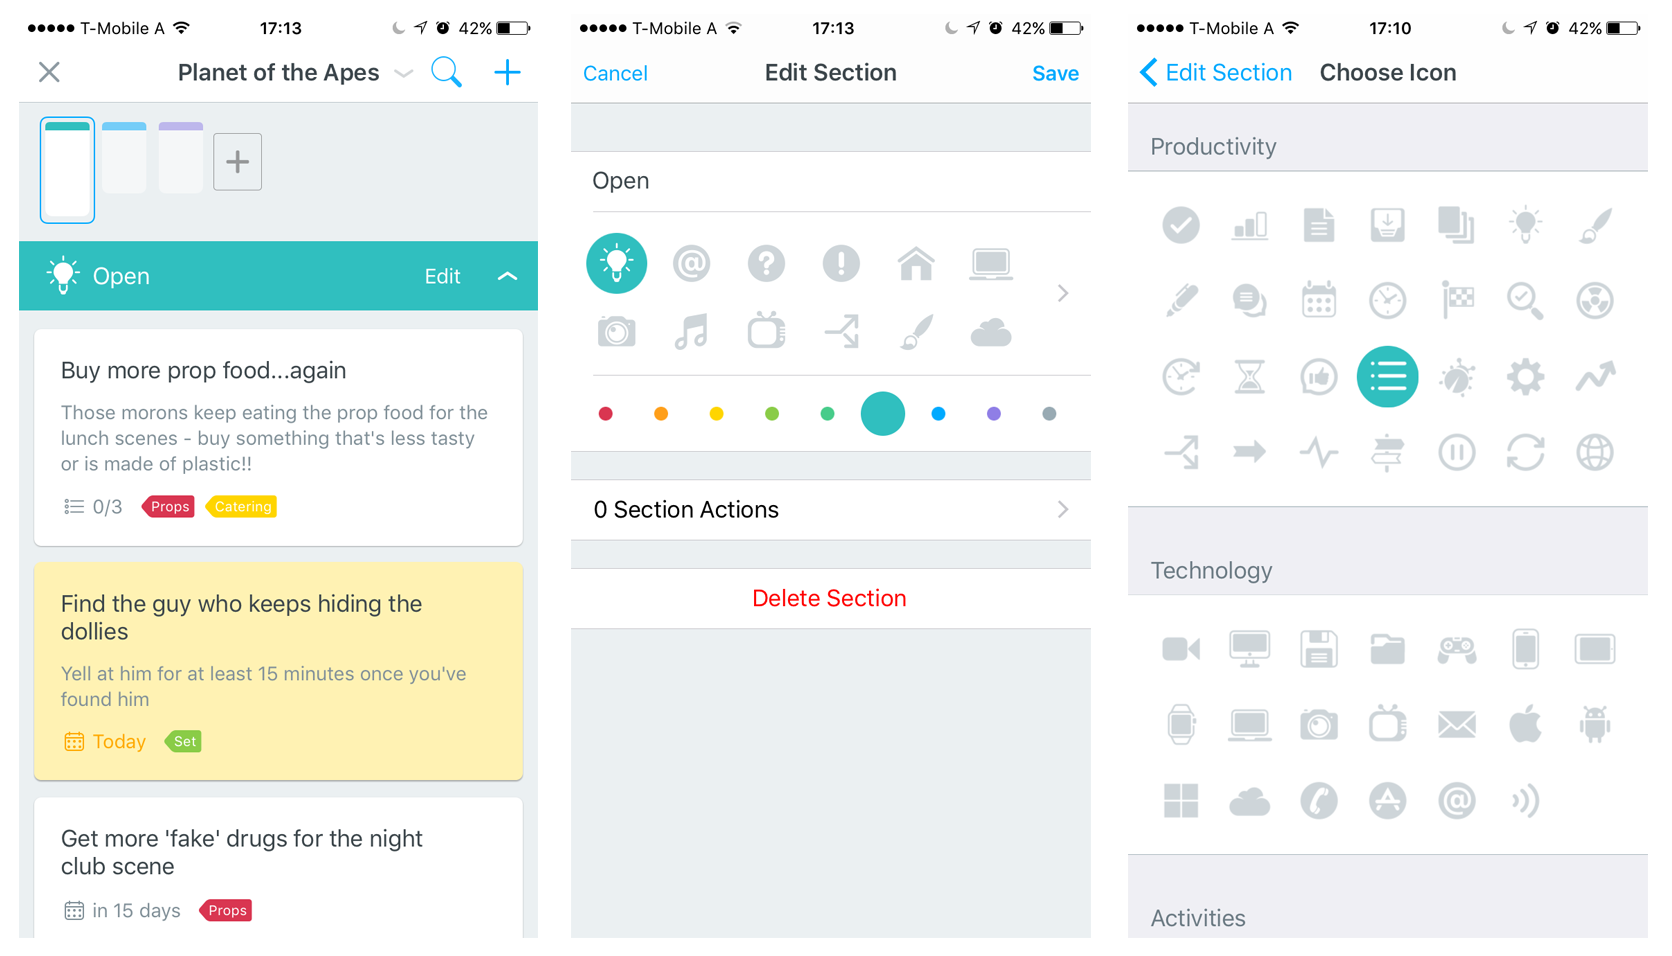 How to change section icons in MeisterTask for iOS